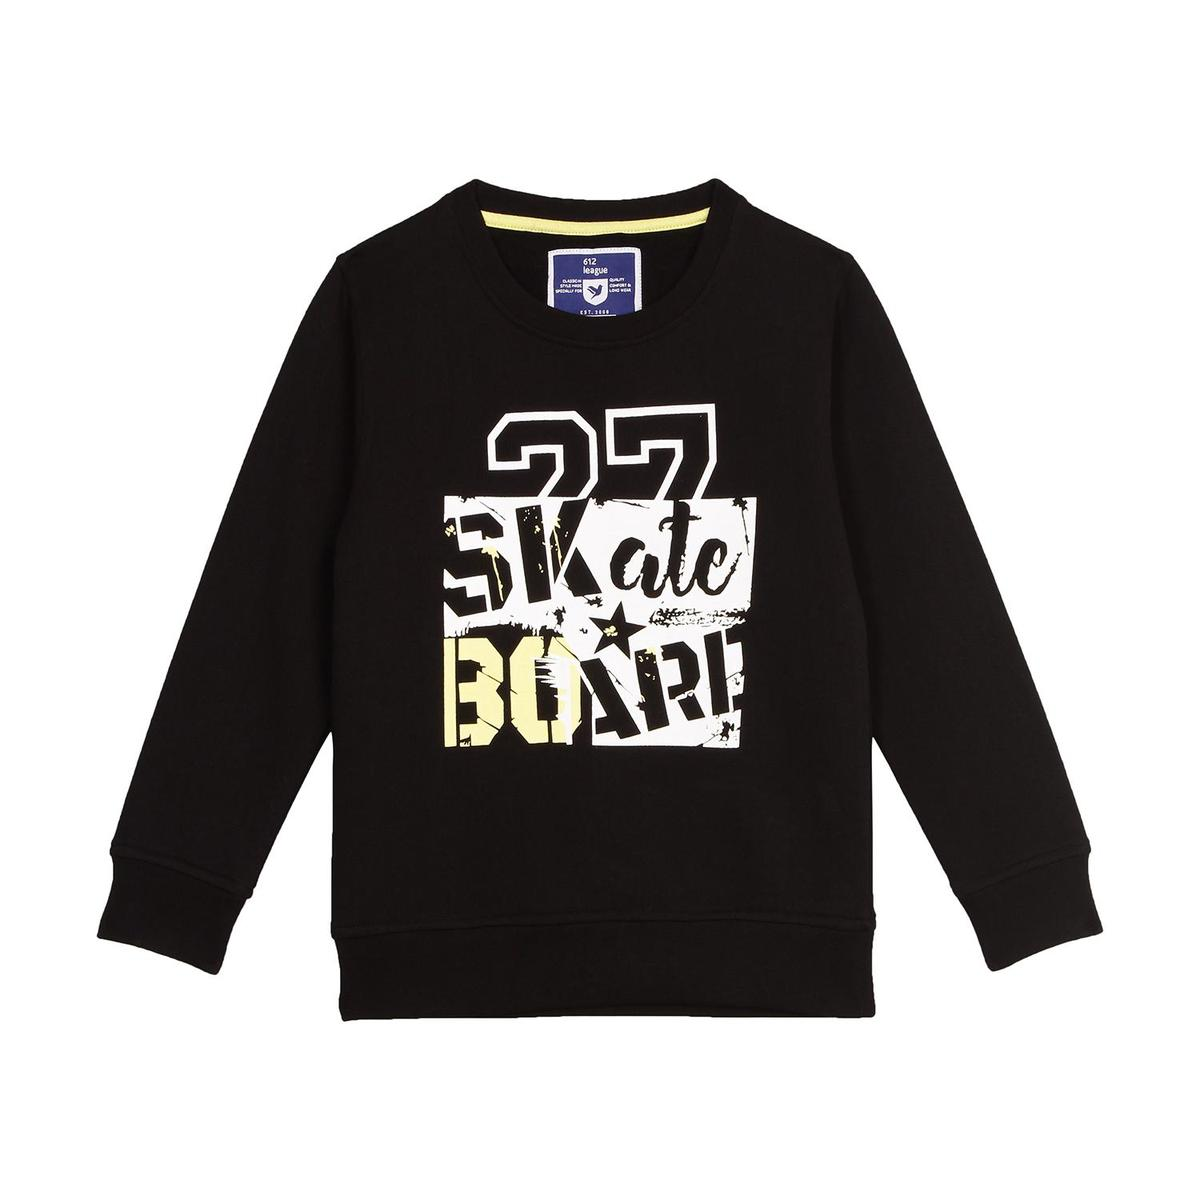 612 League - Black Colored R-neck French Terry Knit Graphic Cotton Sweatshirt For Boys